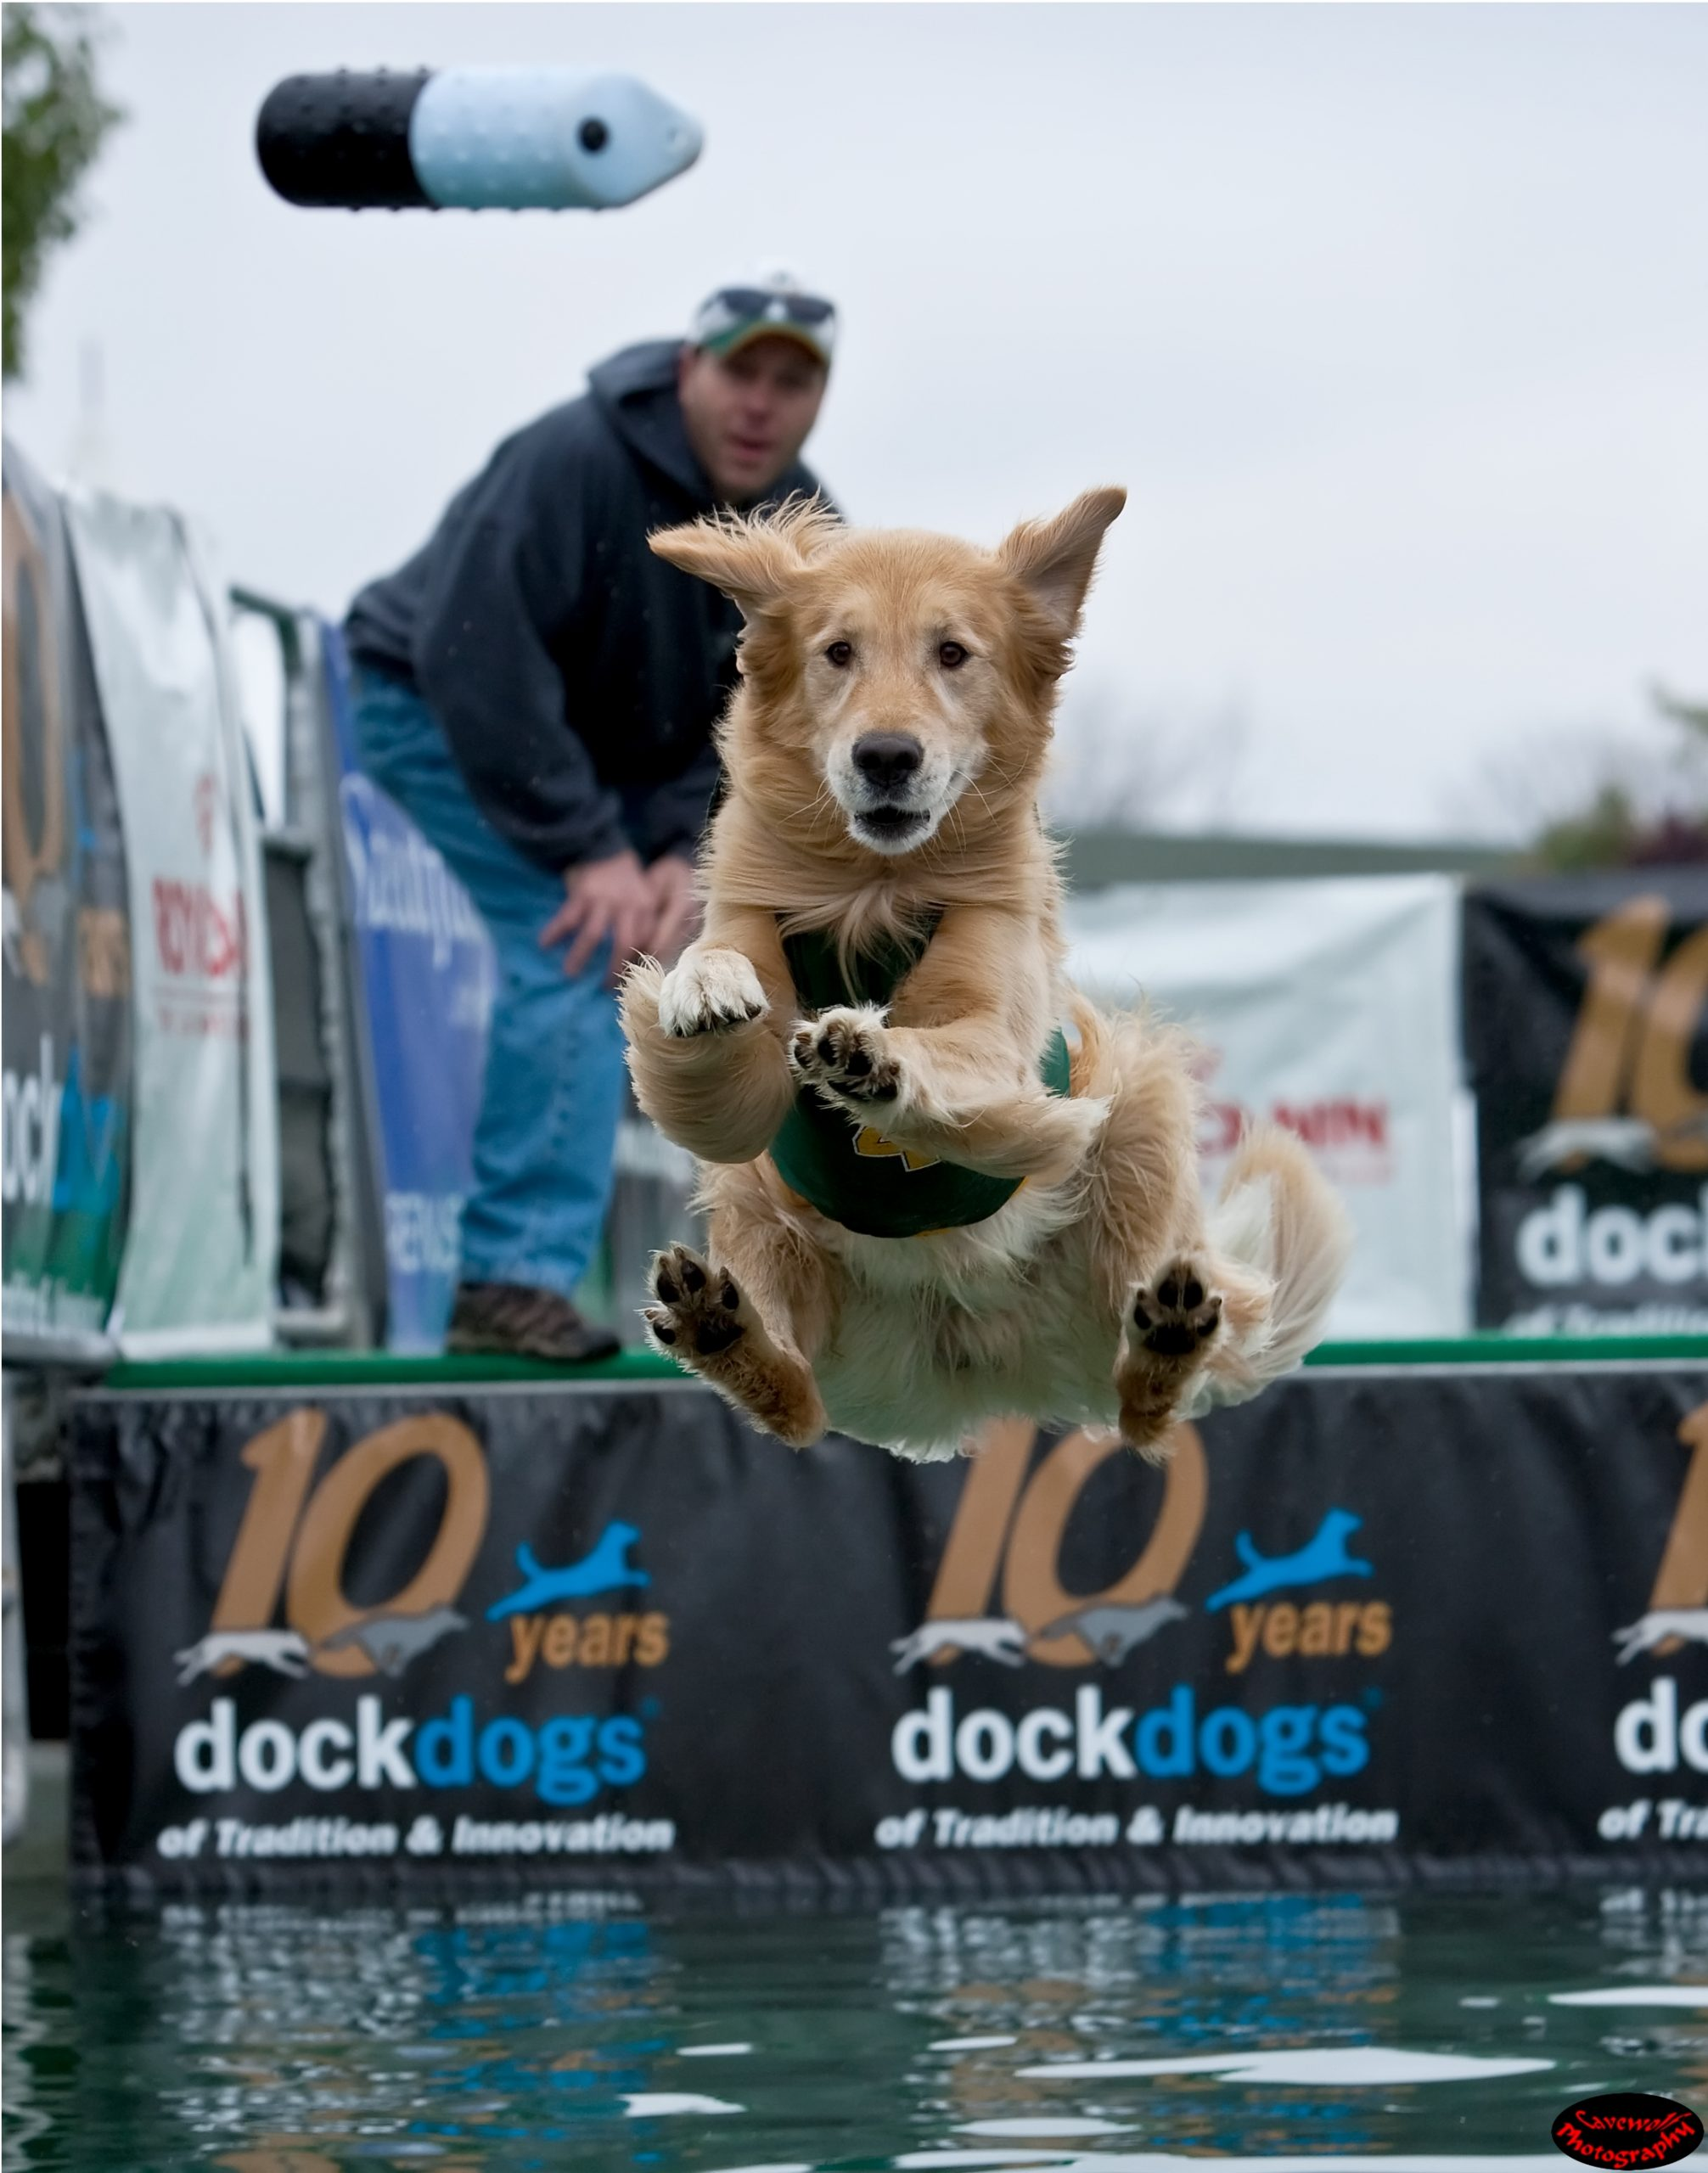 Dock Dog Jumping Classes At Rummy's Beach Club